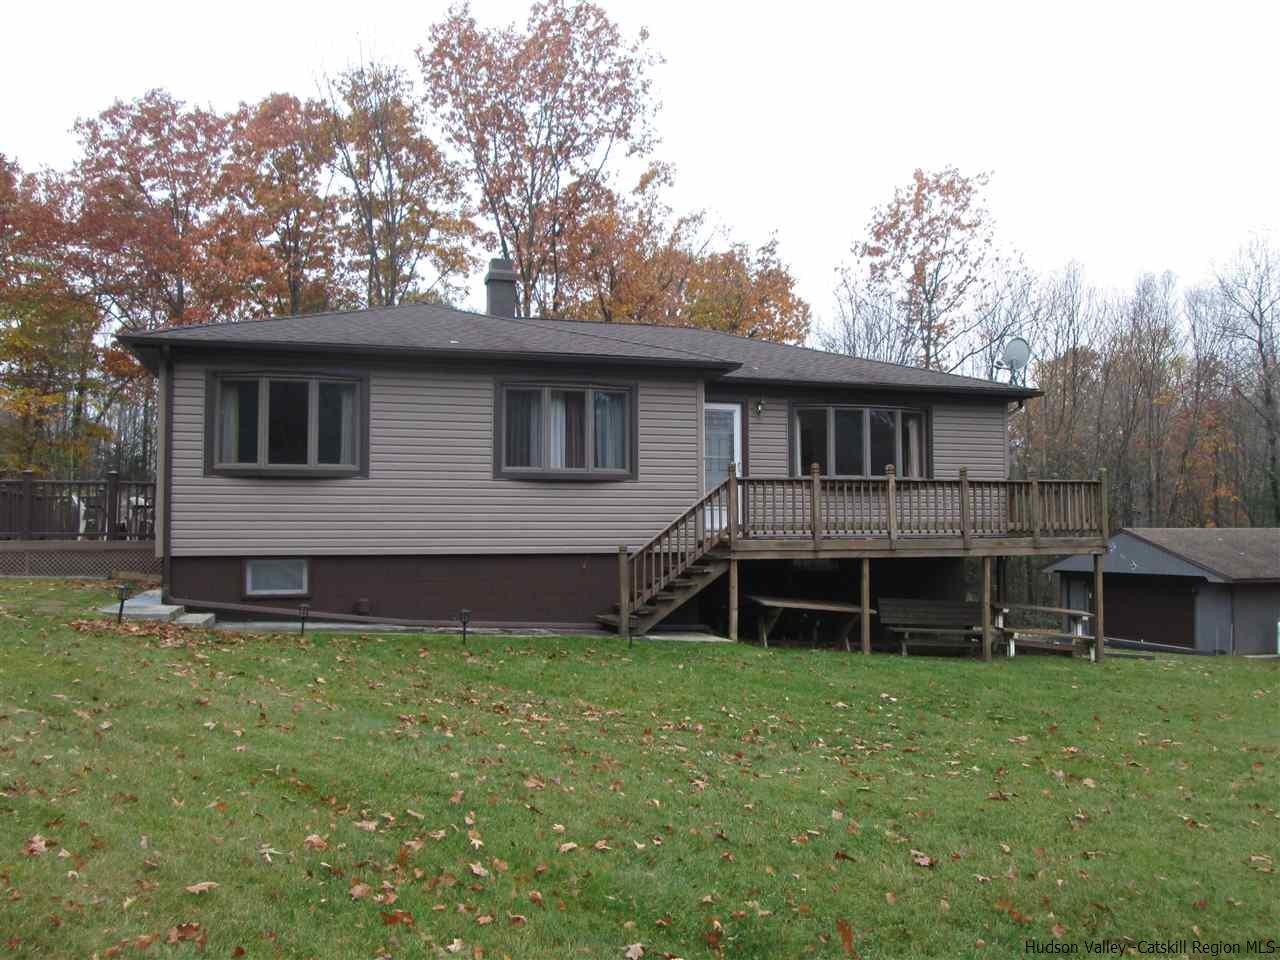 Single Family Home for Sale at 167 LACKAWACK HILL ROAD 167 LACKAWACK HILL ROAD Napanoch, New York 12458 United States